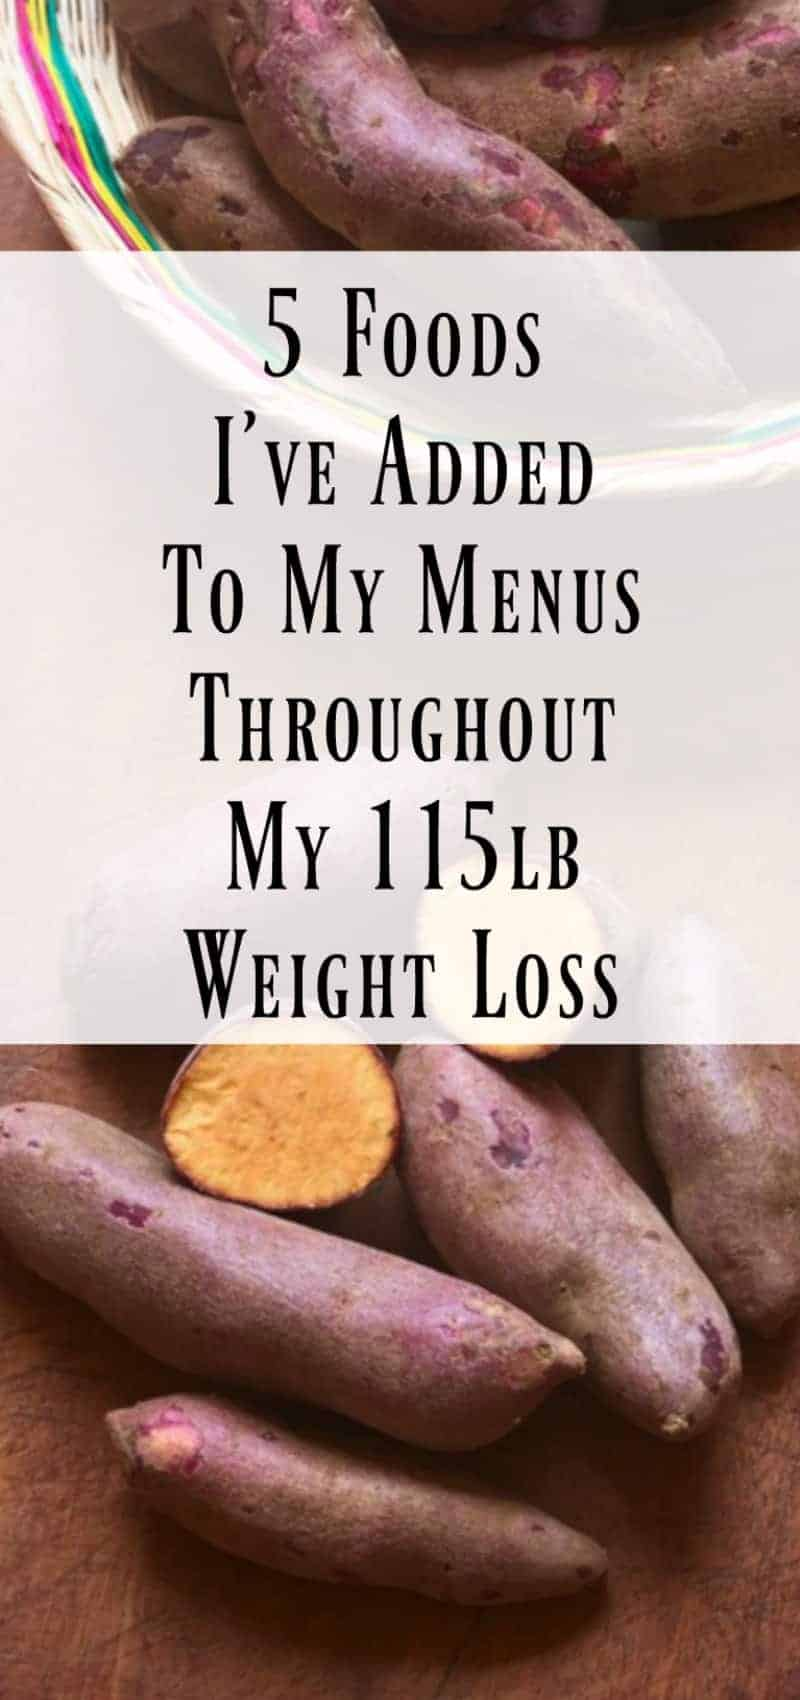 5 Foods I've ADDED To My Menus Throughout My -115lb Weight Loss